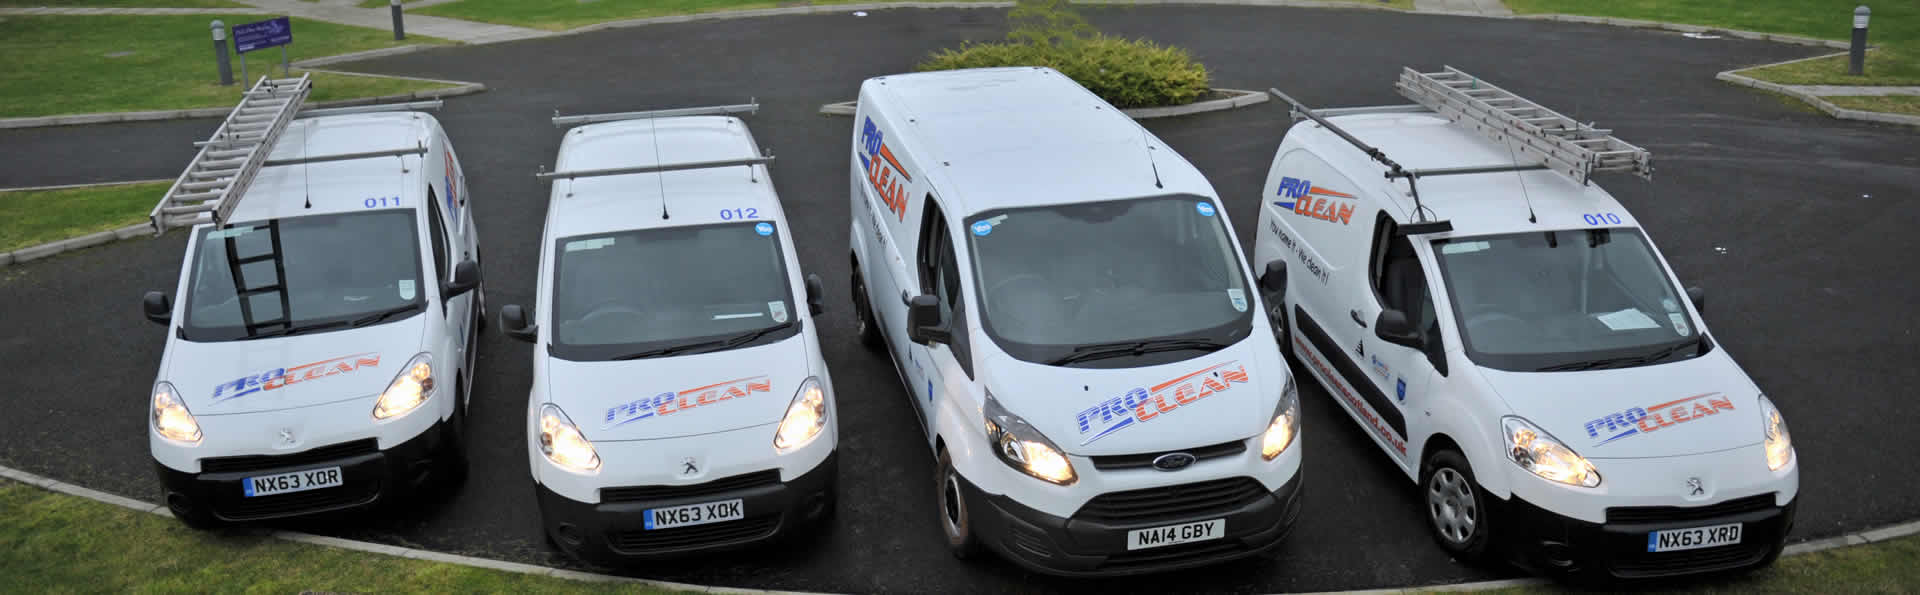 ProClean Cleaners vehicle fleet